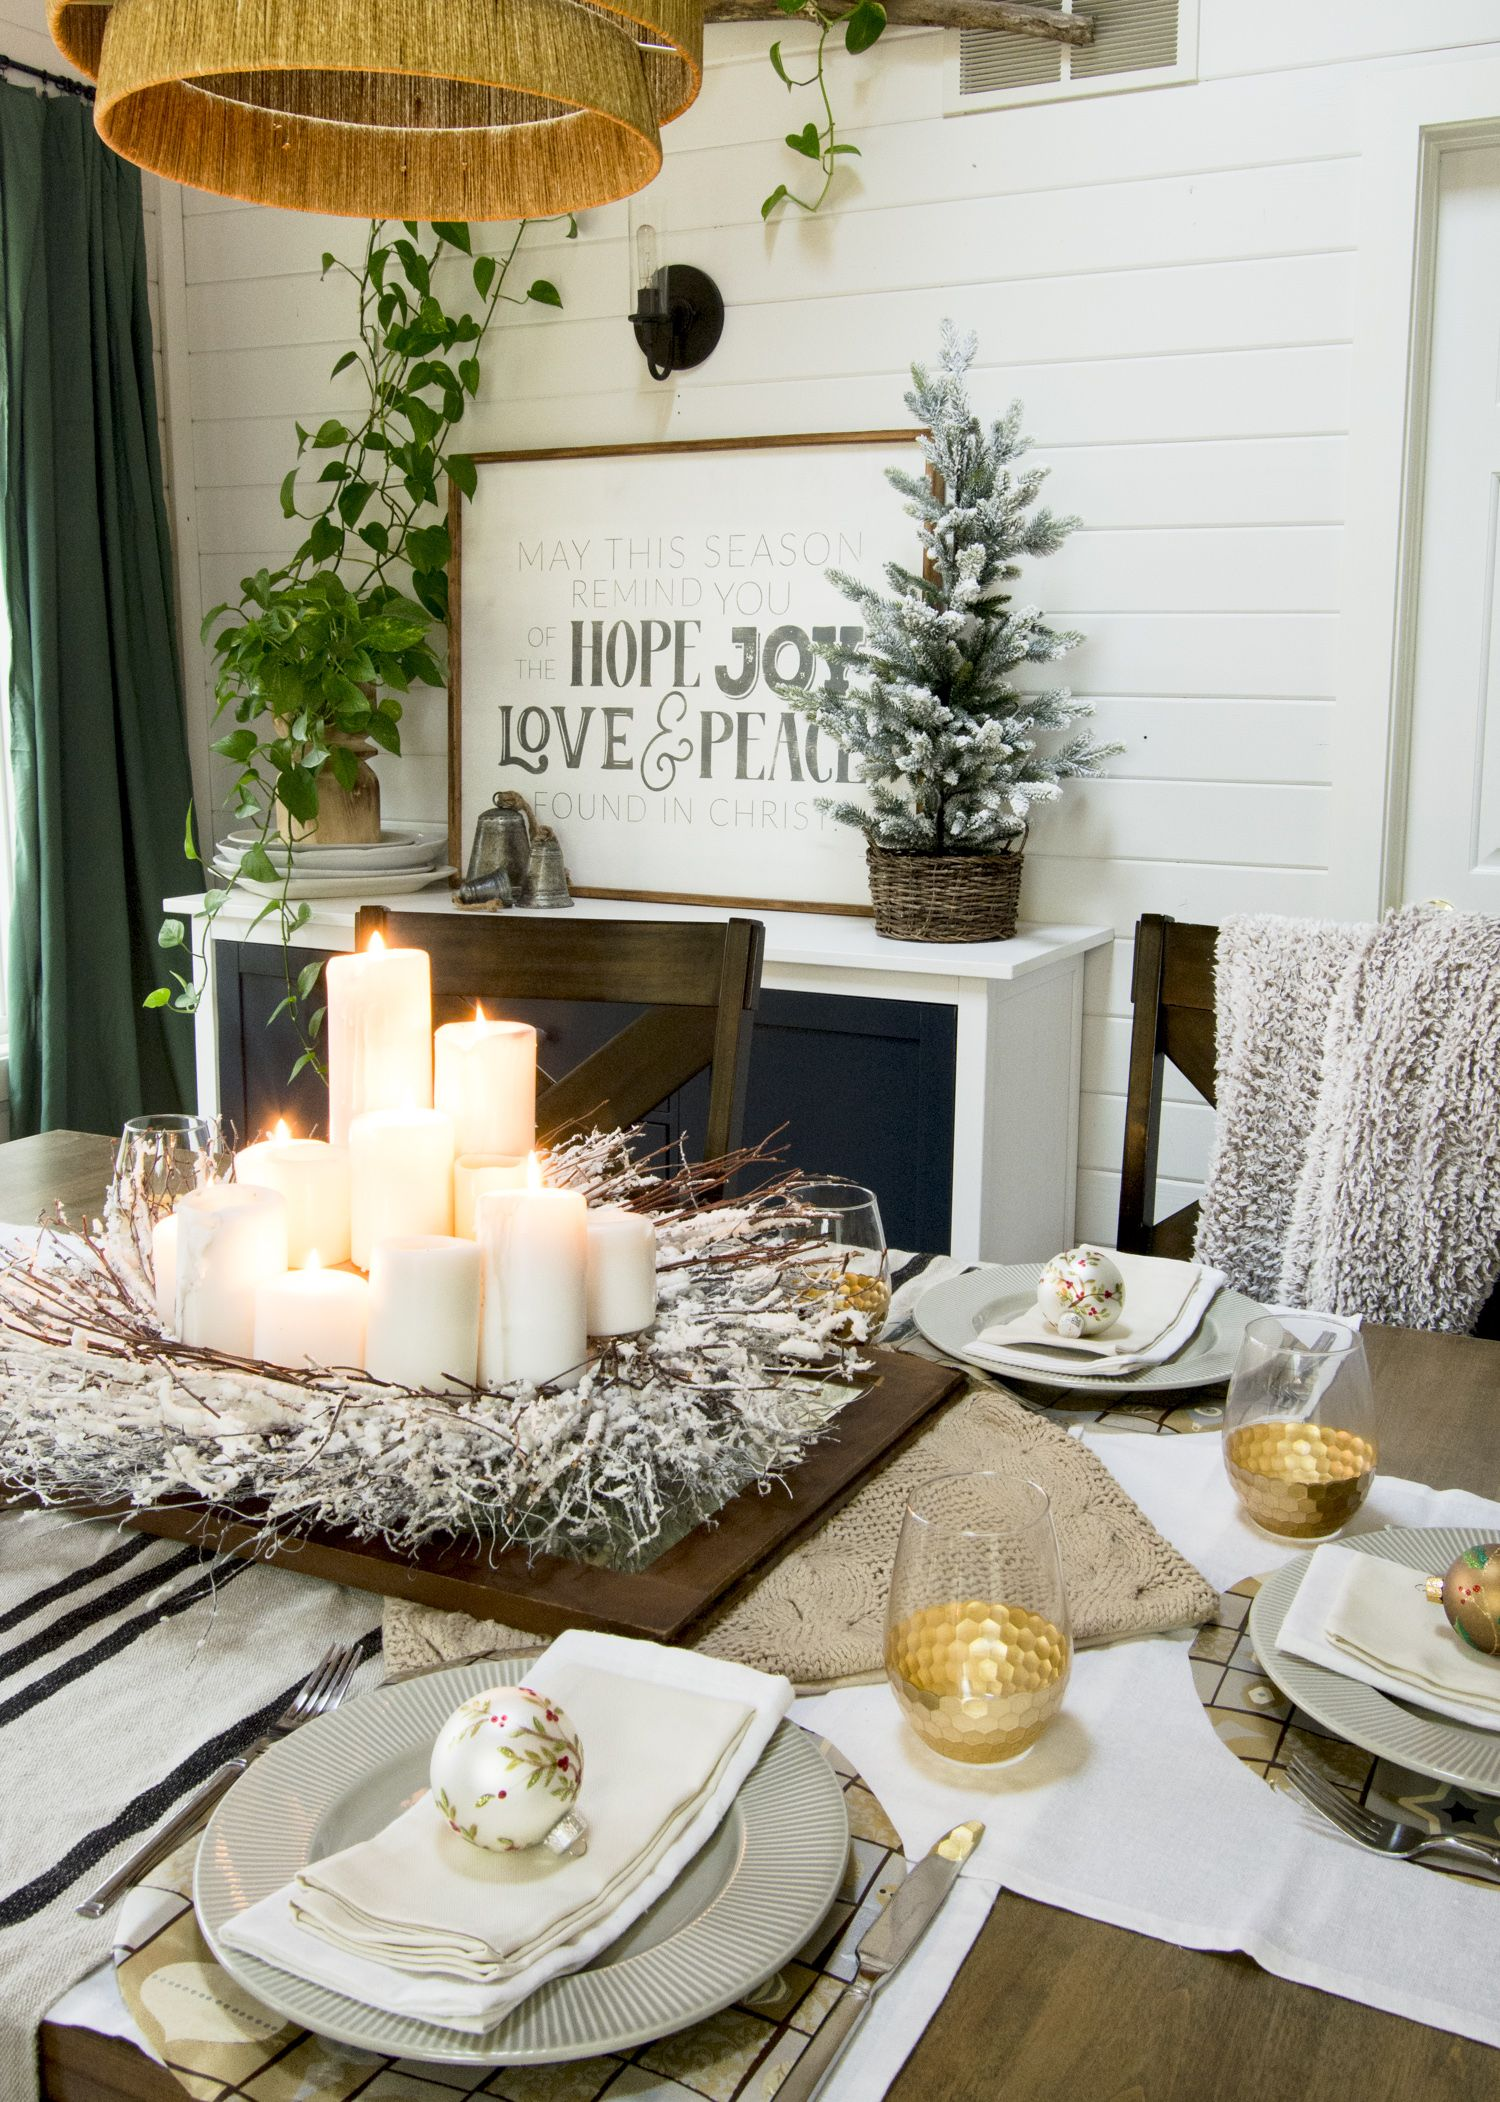 White And Gold Centerpieces As Christmas Table Decor Christmas Table Decorations Christmas Table Table Decorations